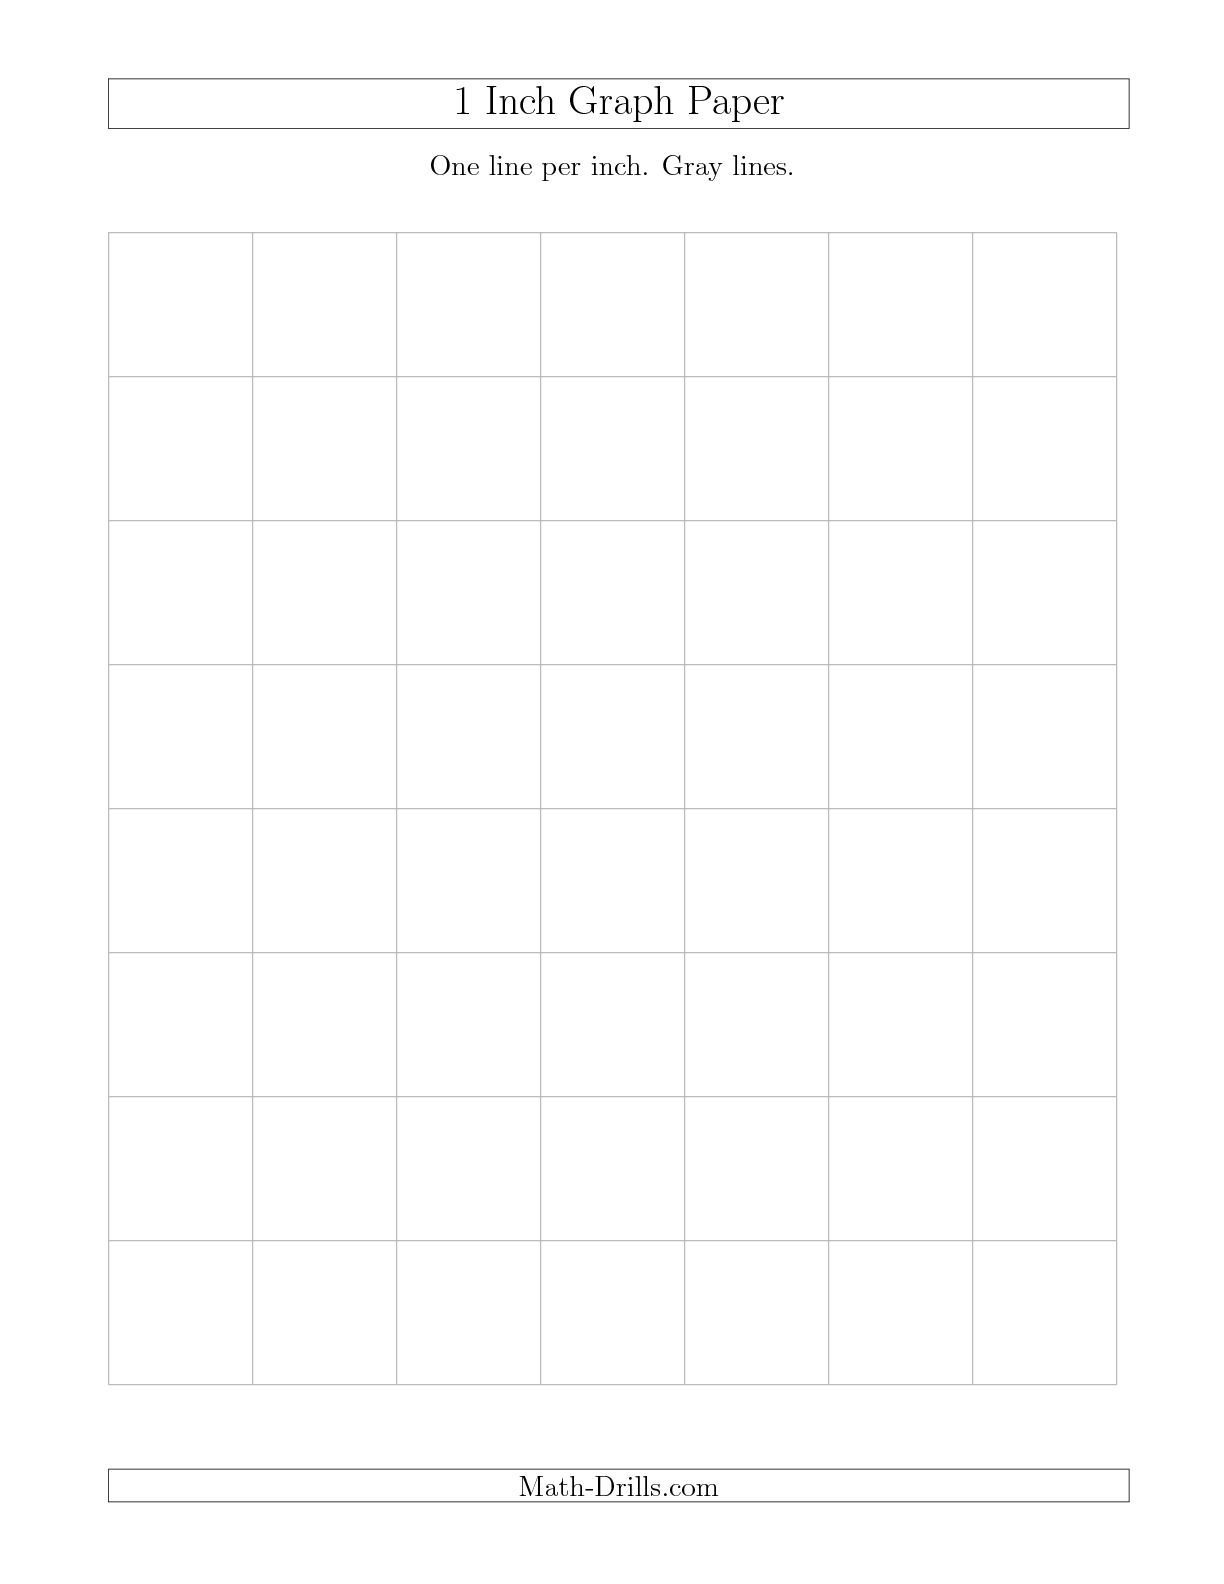 1 Inch Graph Paper With Gray Lines Math Worksheet